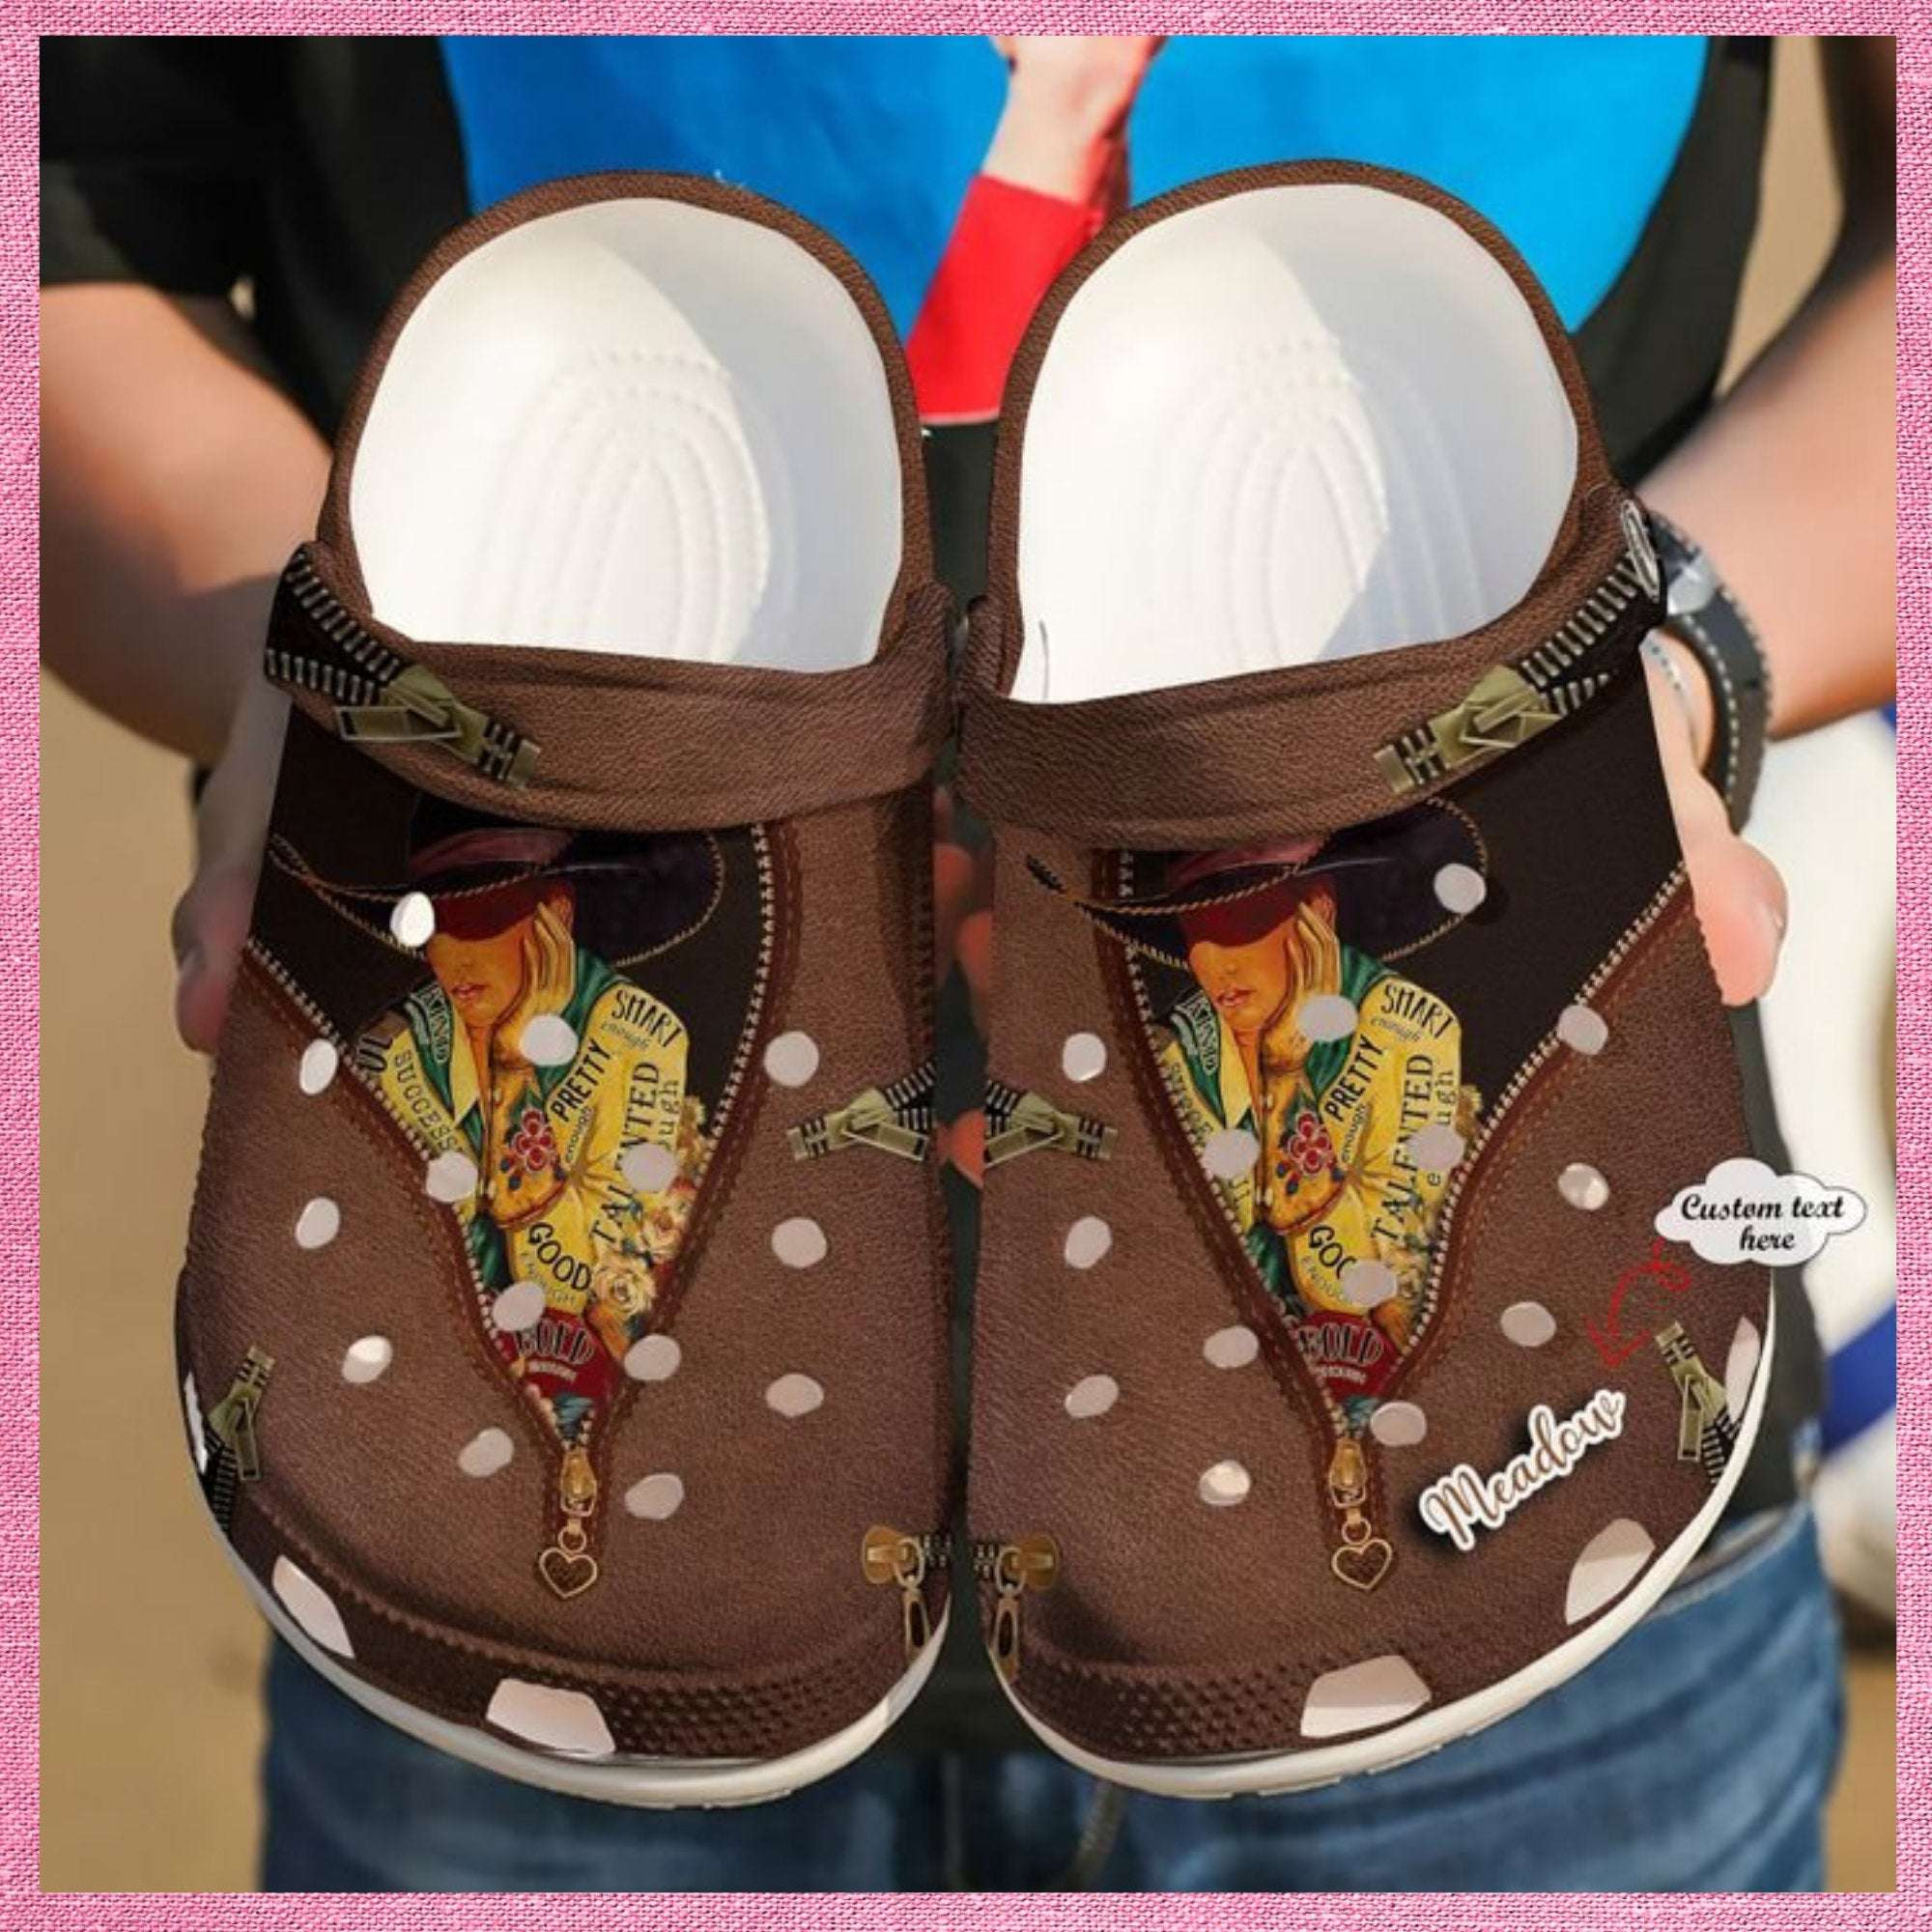 Cowgirl Personalized Pretty Crocs Clog Shoes